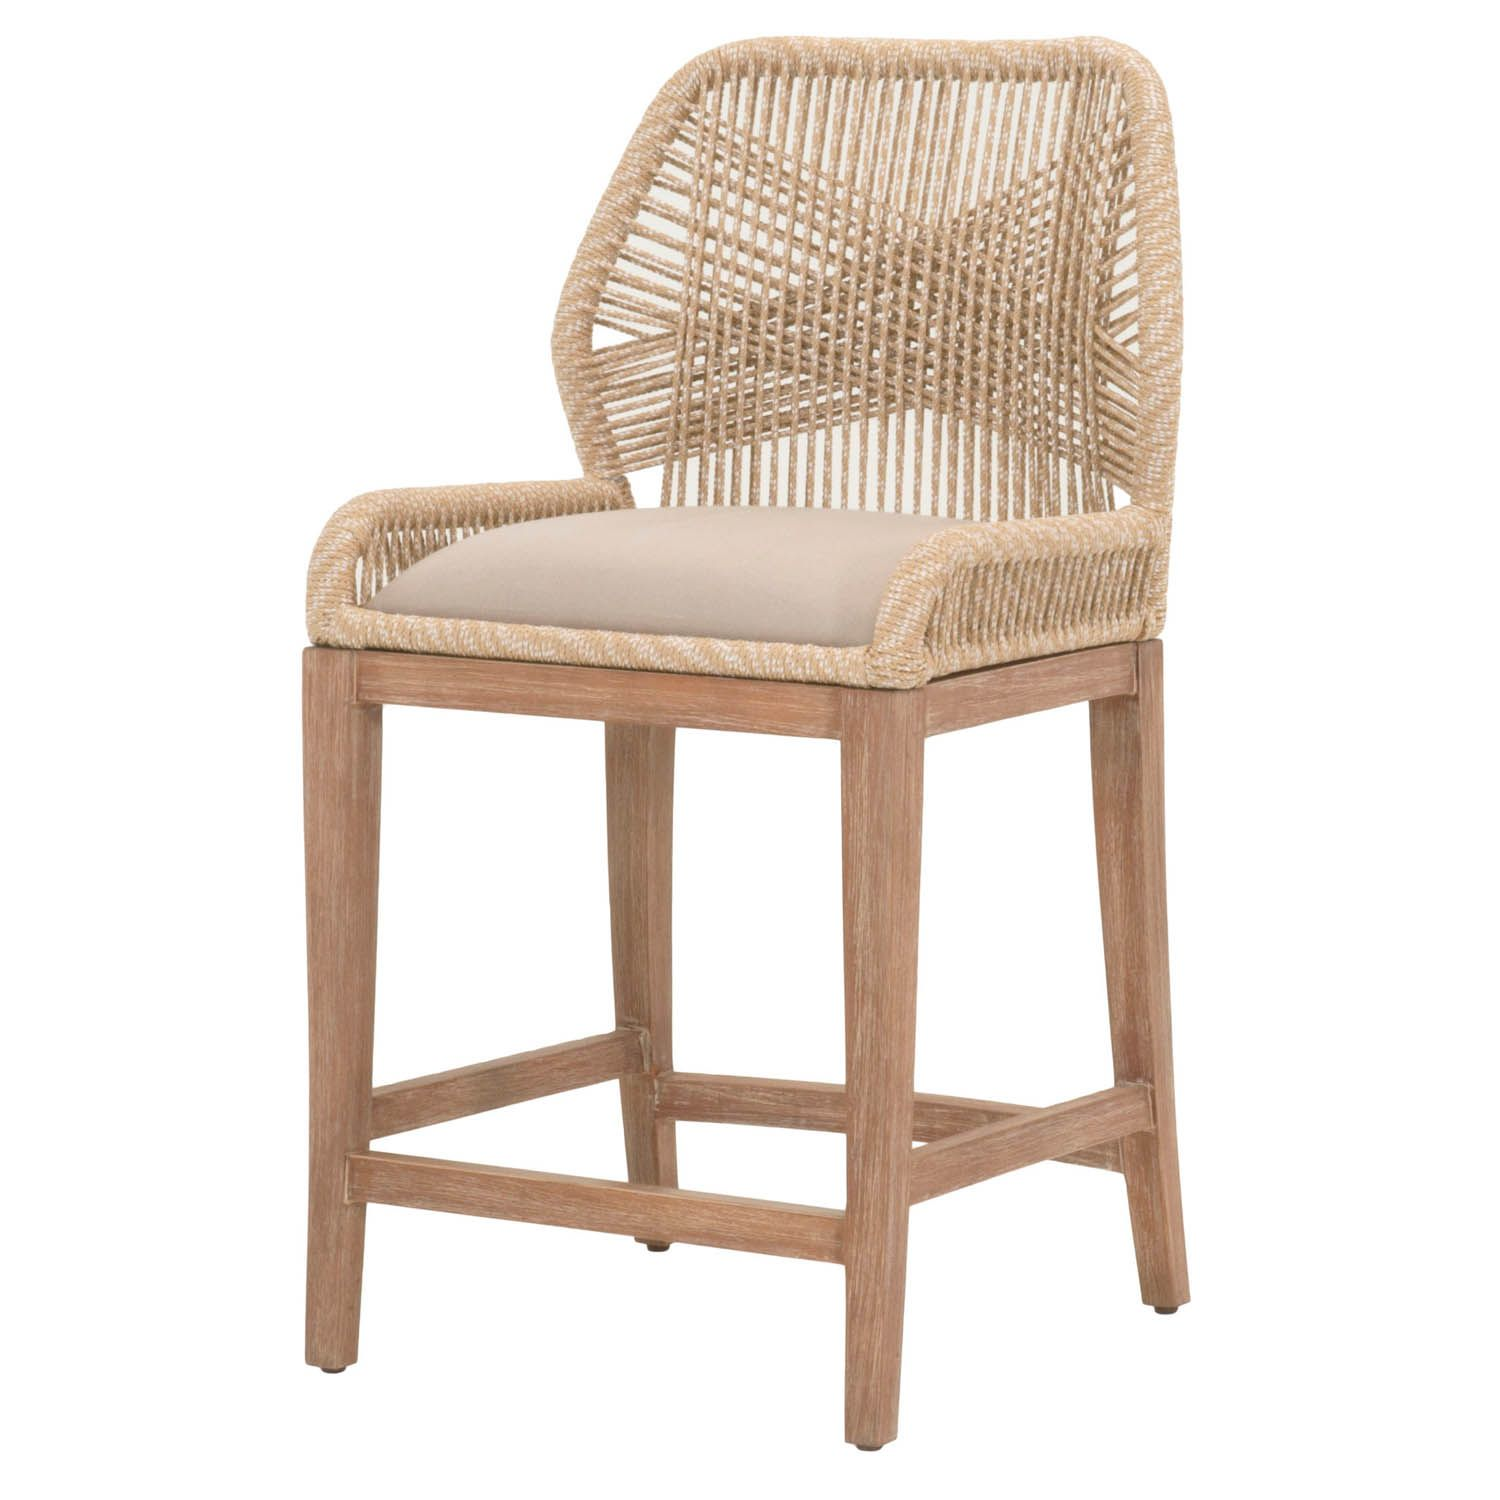 Luca Sand Counter Stool Shop Bar And Counter Stools Woven Bar Stools Counter Stools Bar Stools